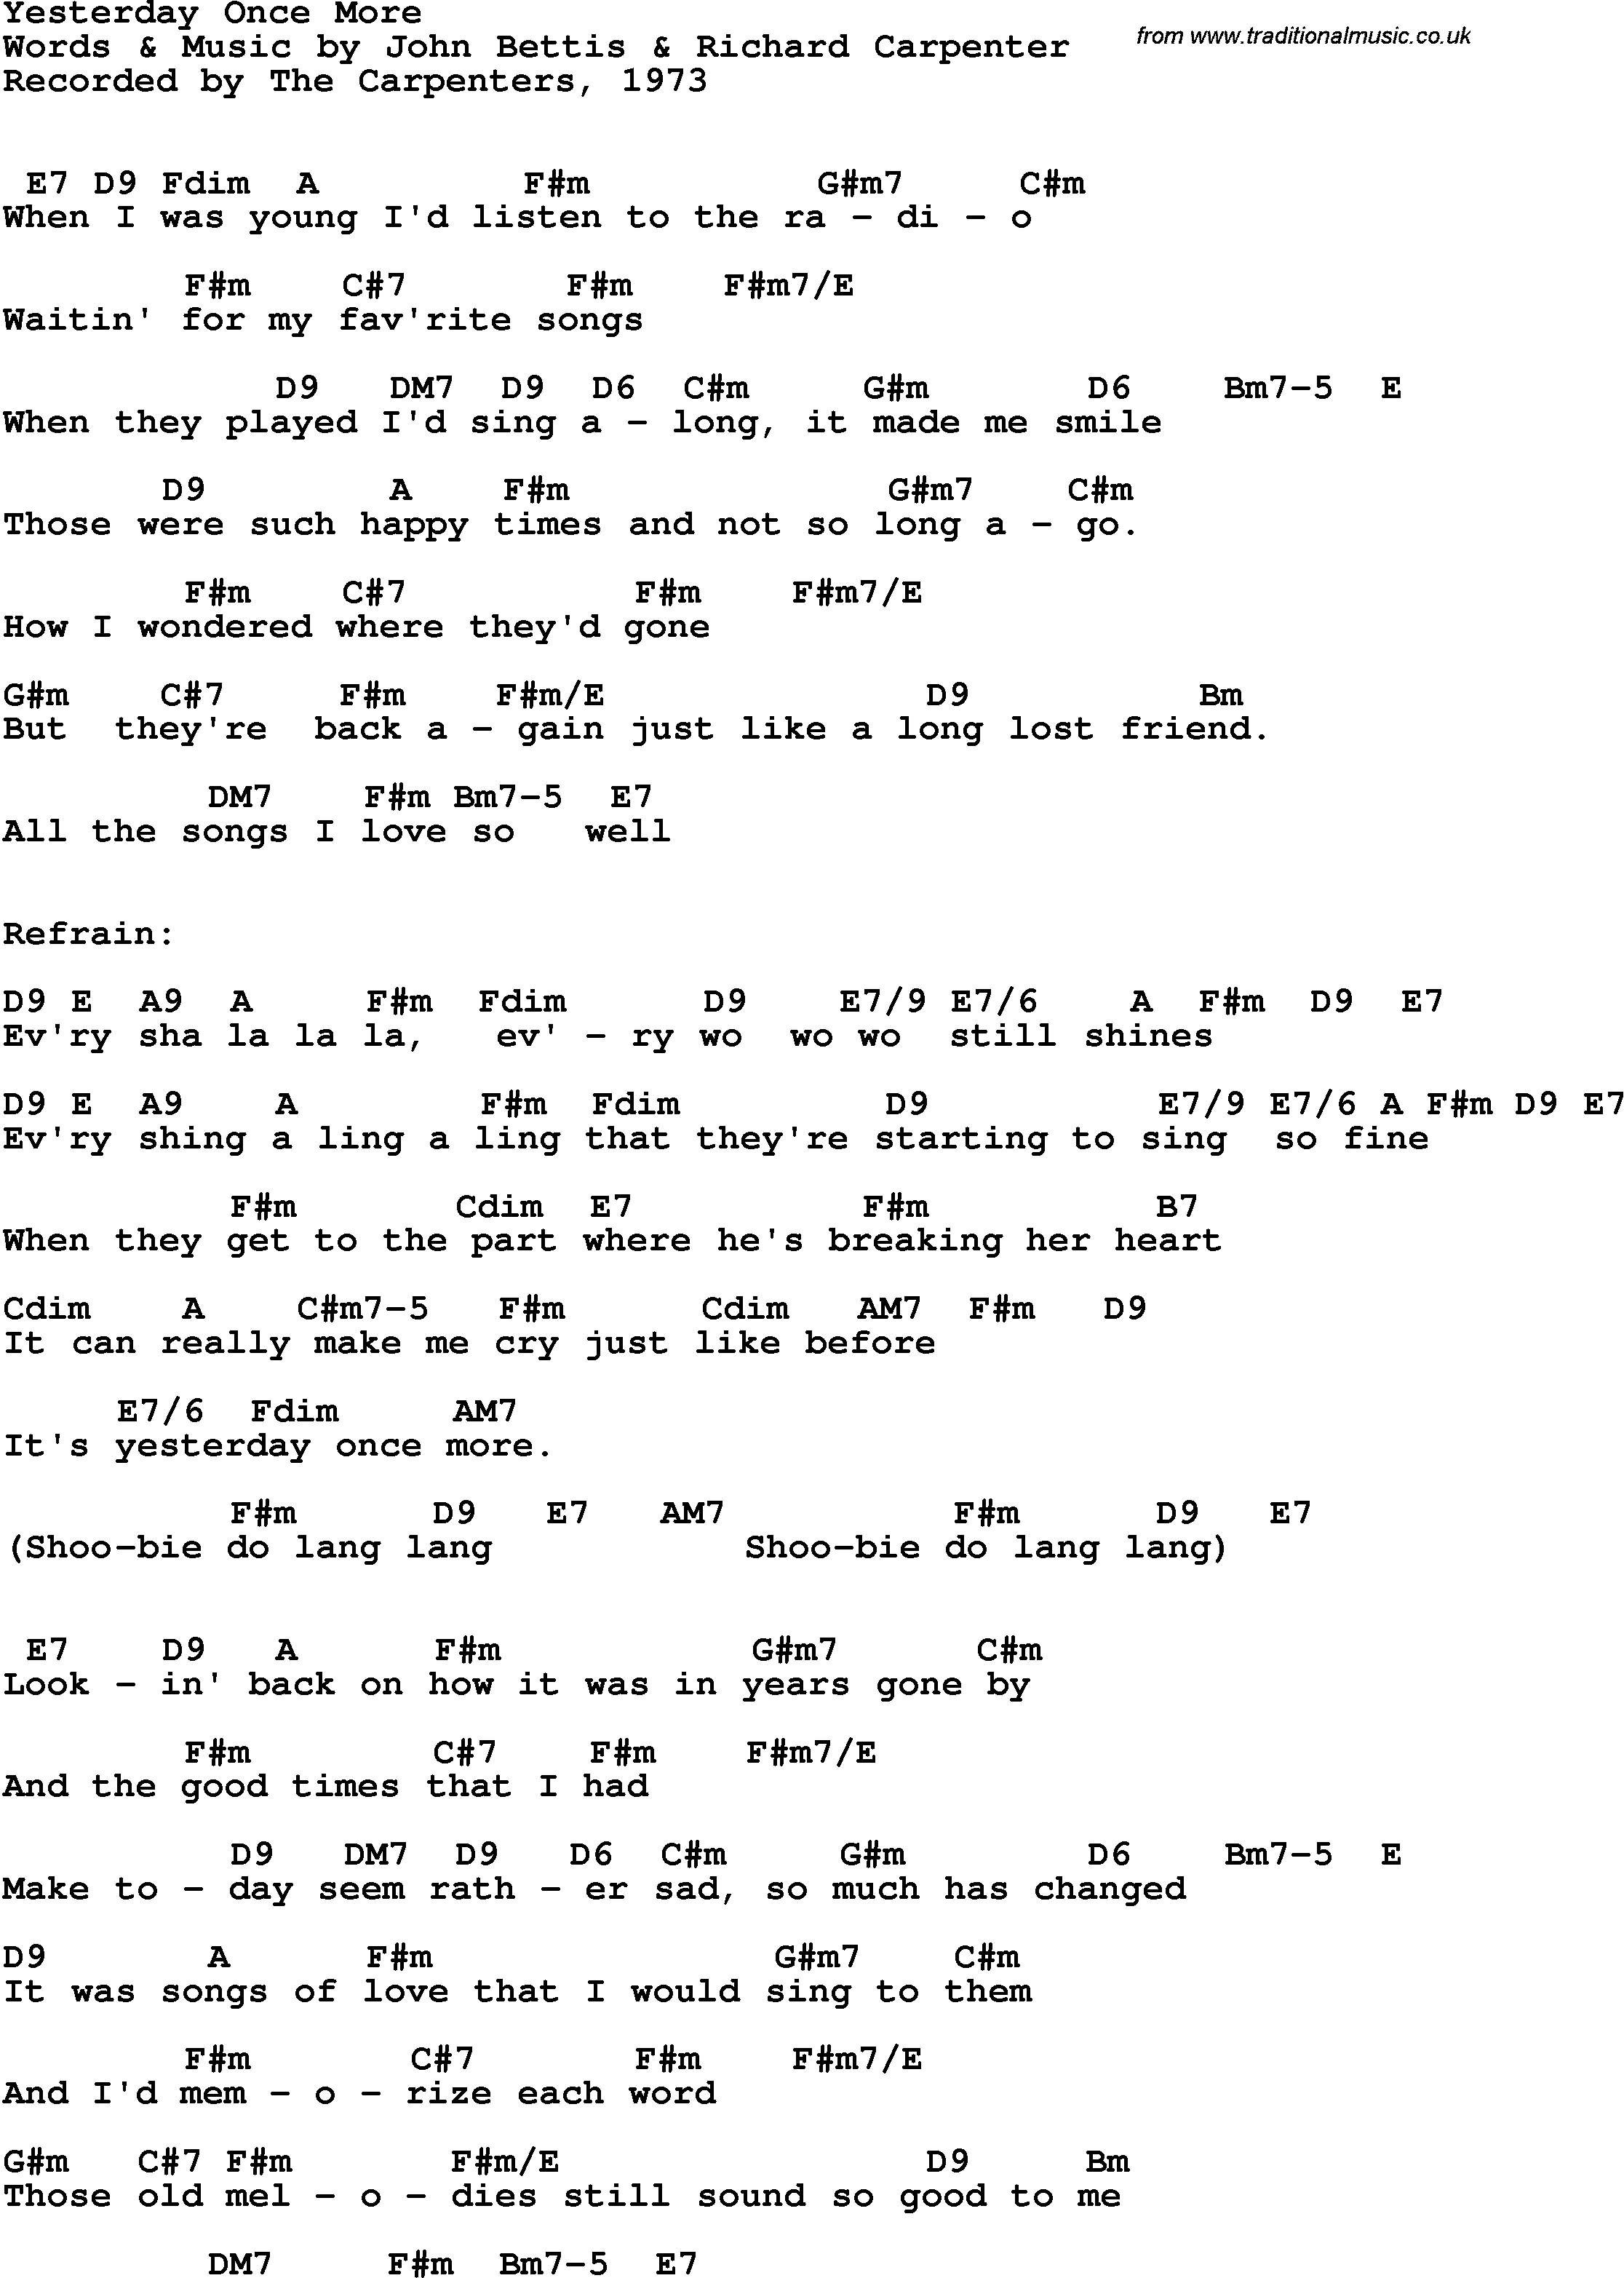 Song Lyrics With Guitar Chords For Yesterday Once More The